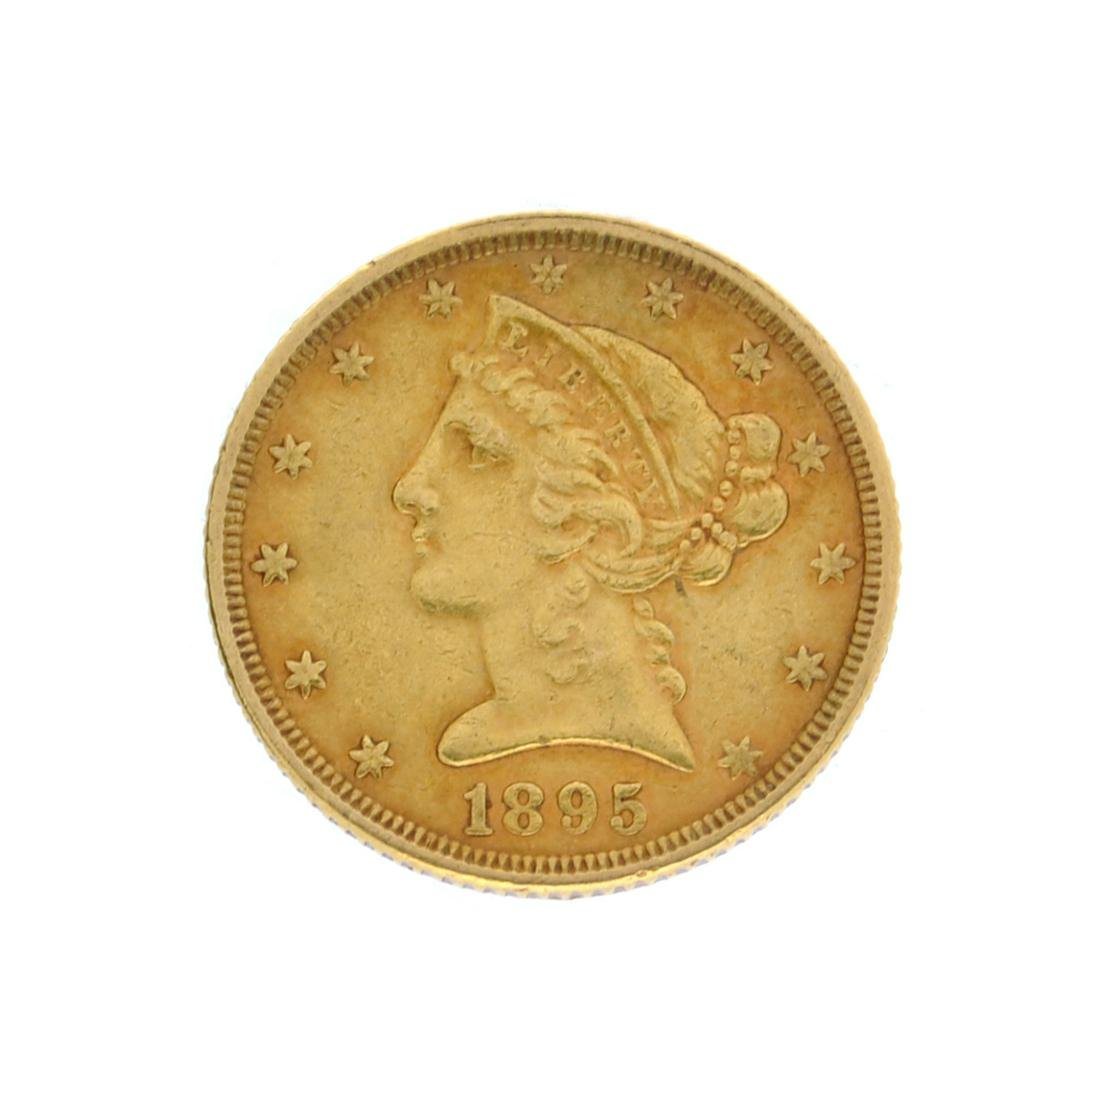 Extremely Rare 1895 $5 U.S. Liberty Head Gold Coin